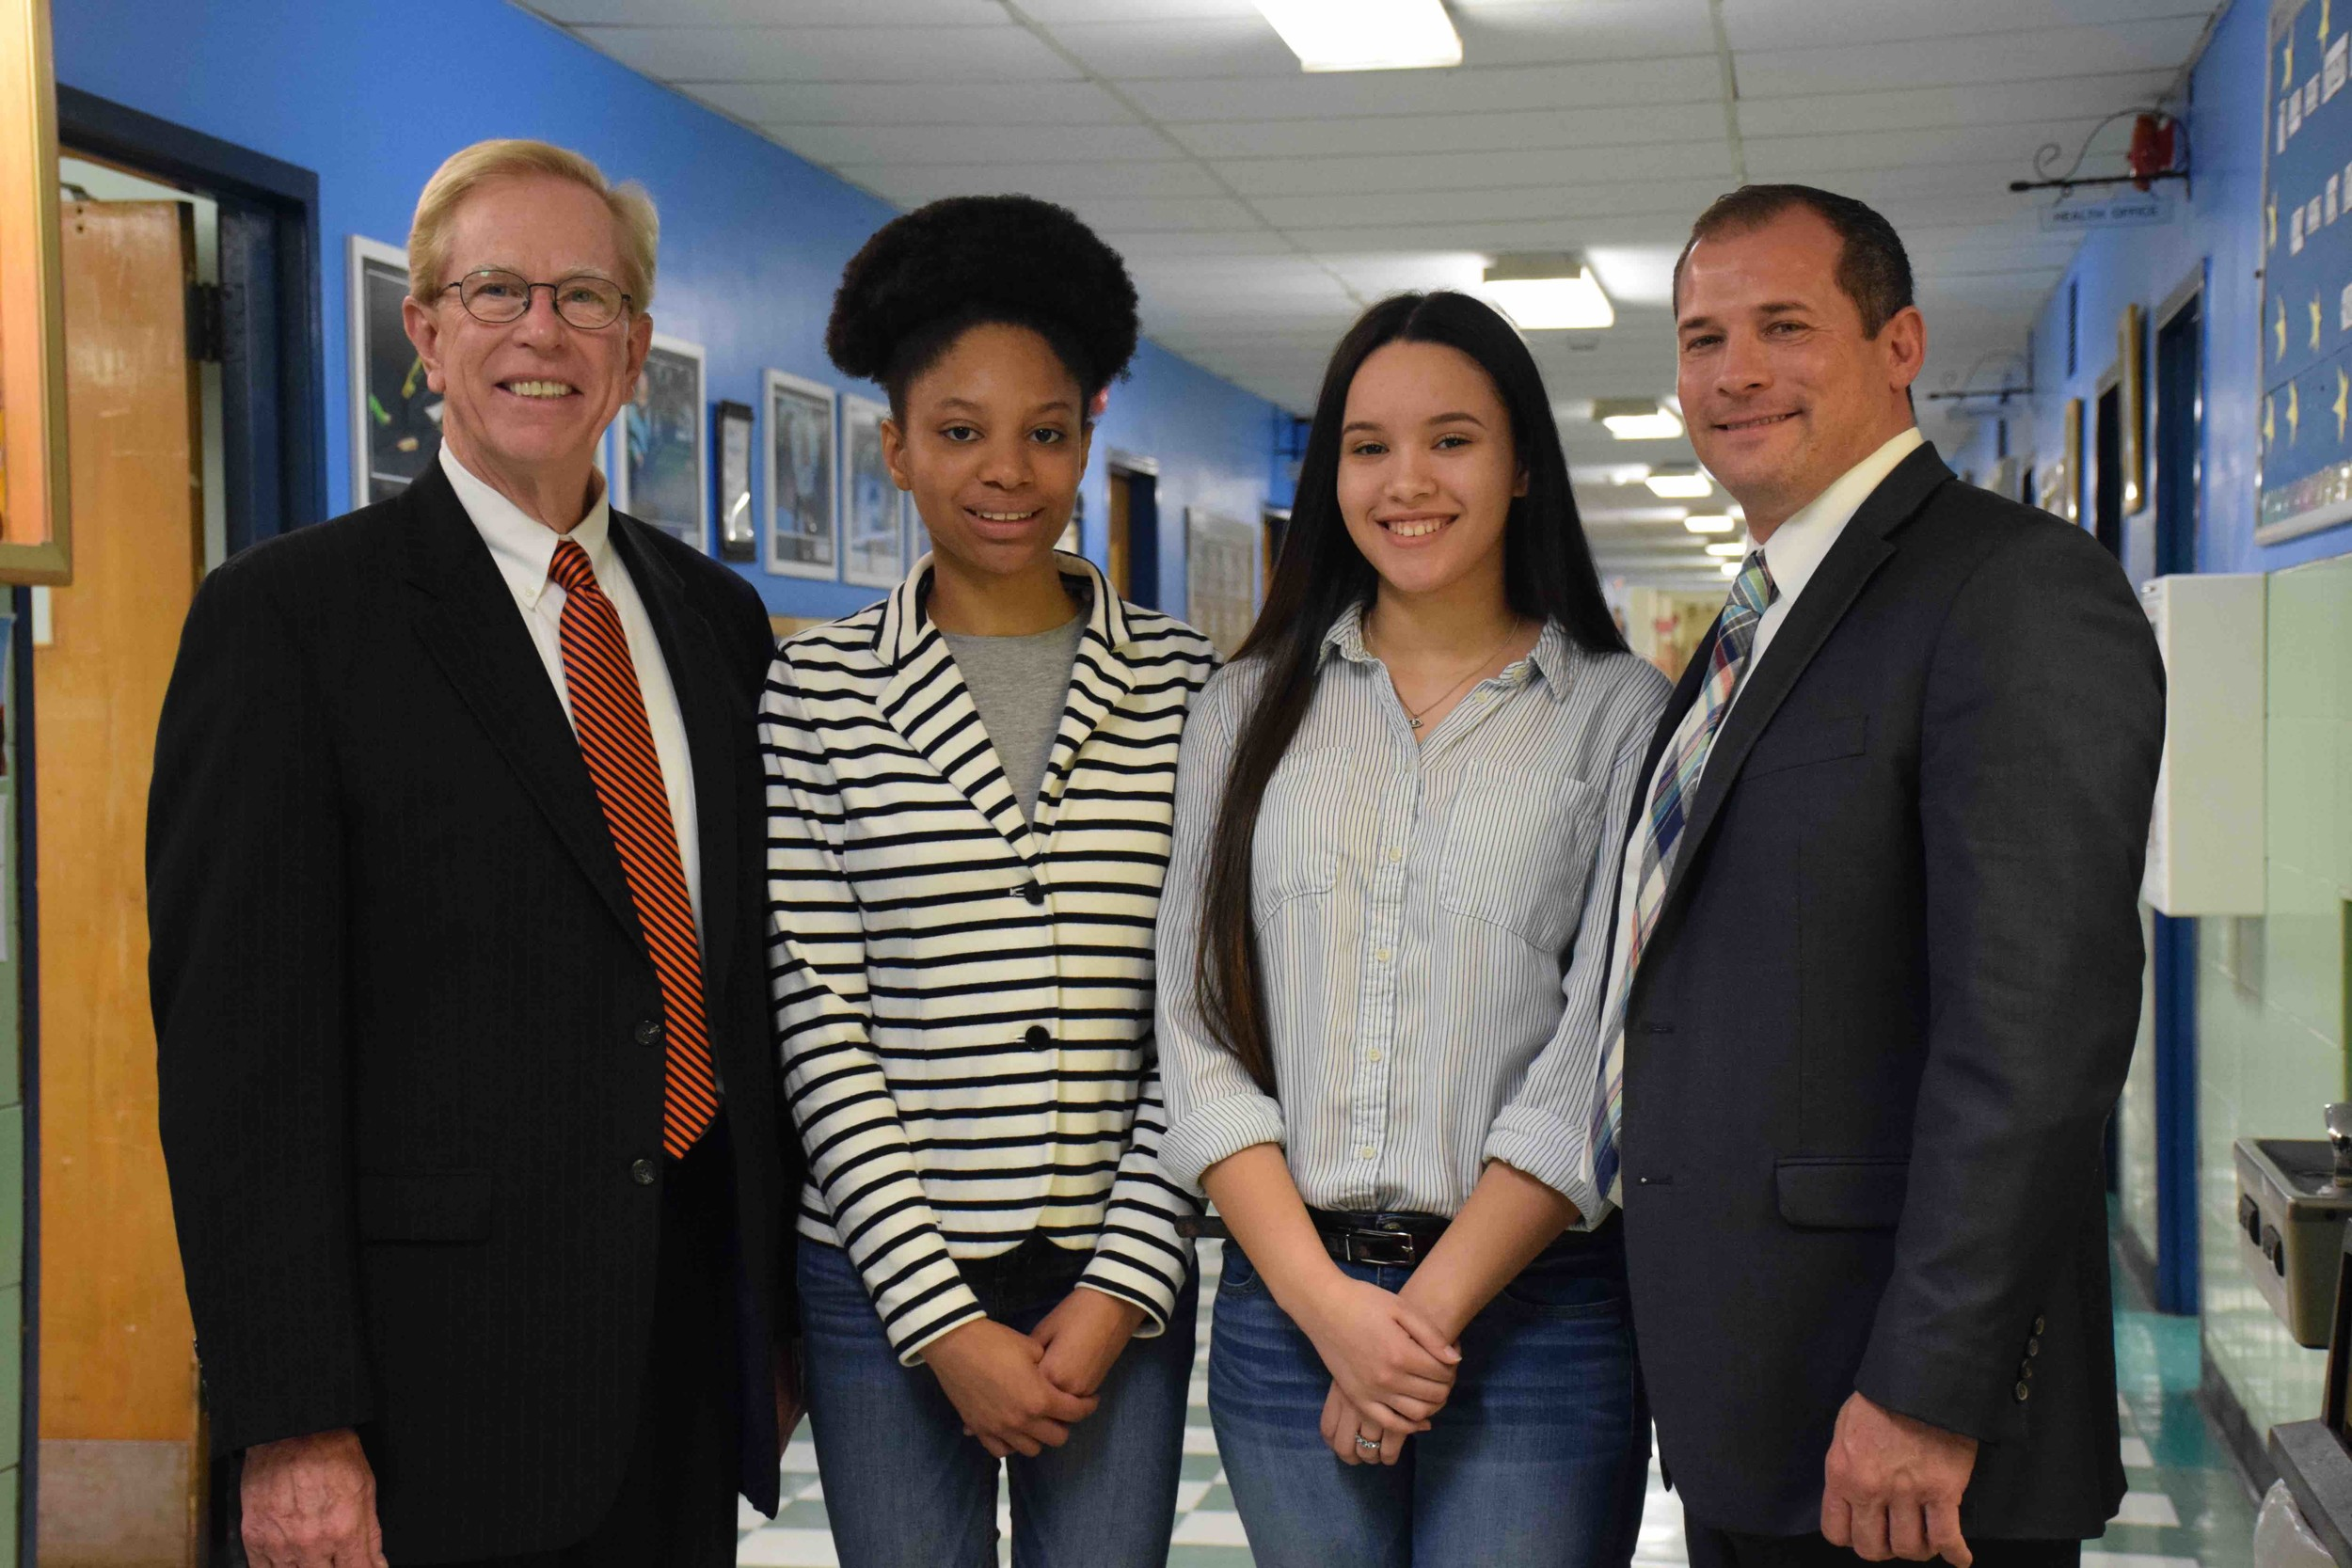 Courtesy Malverne schools